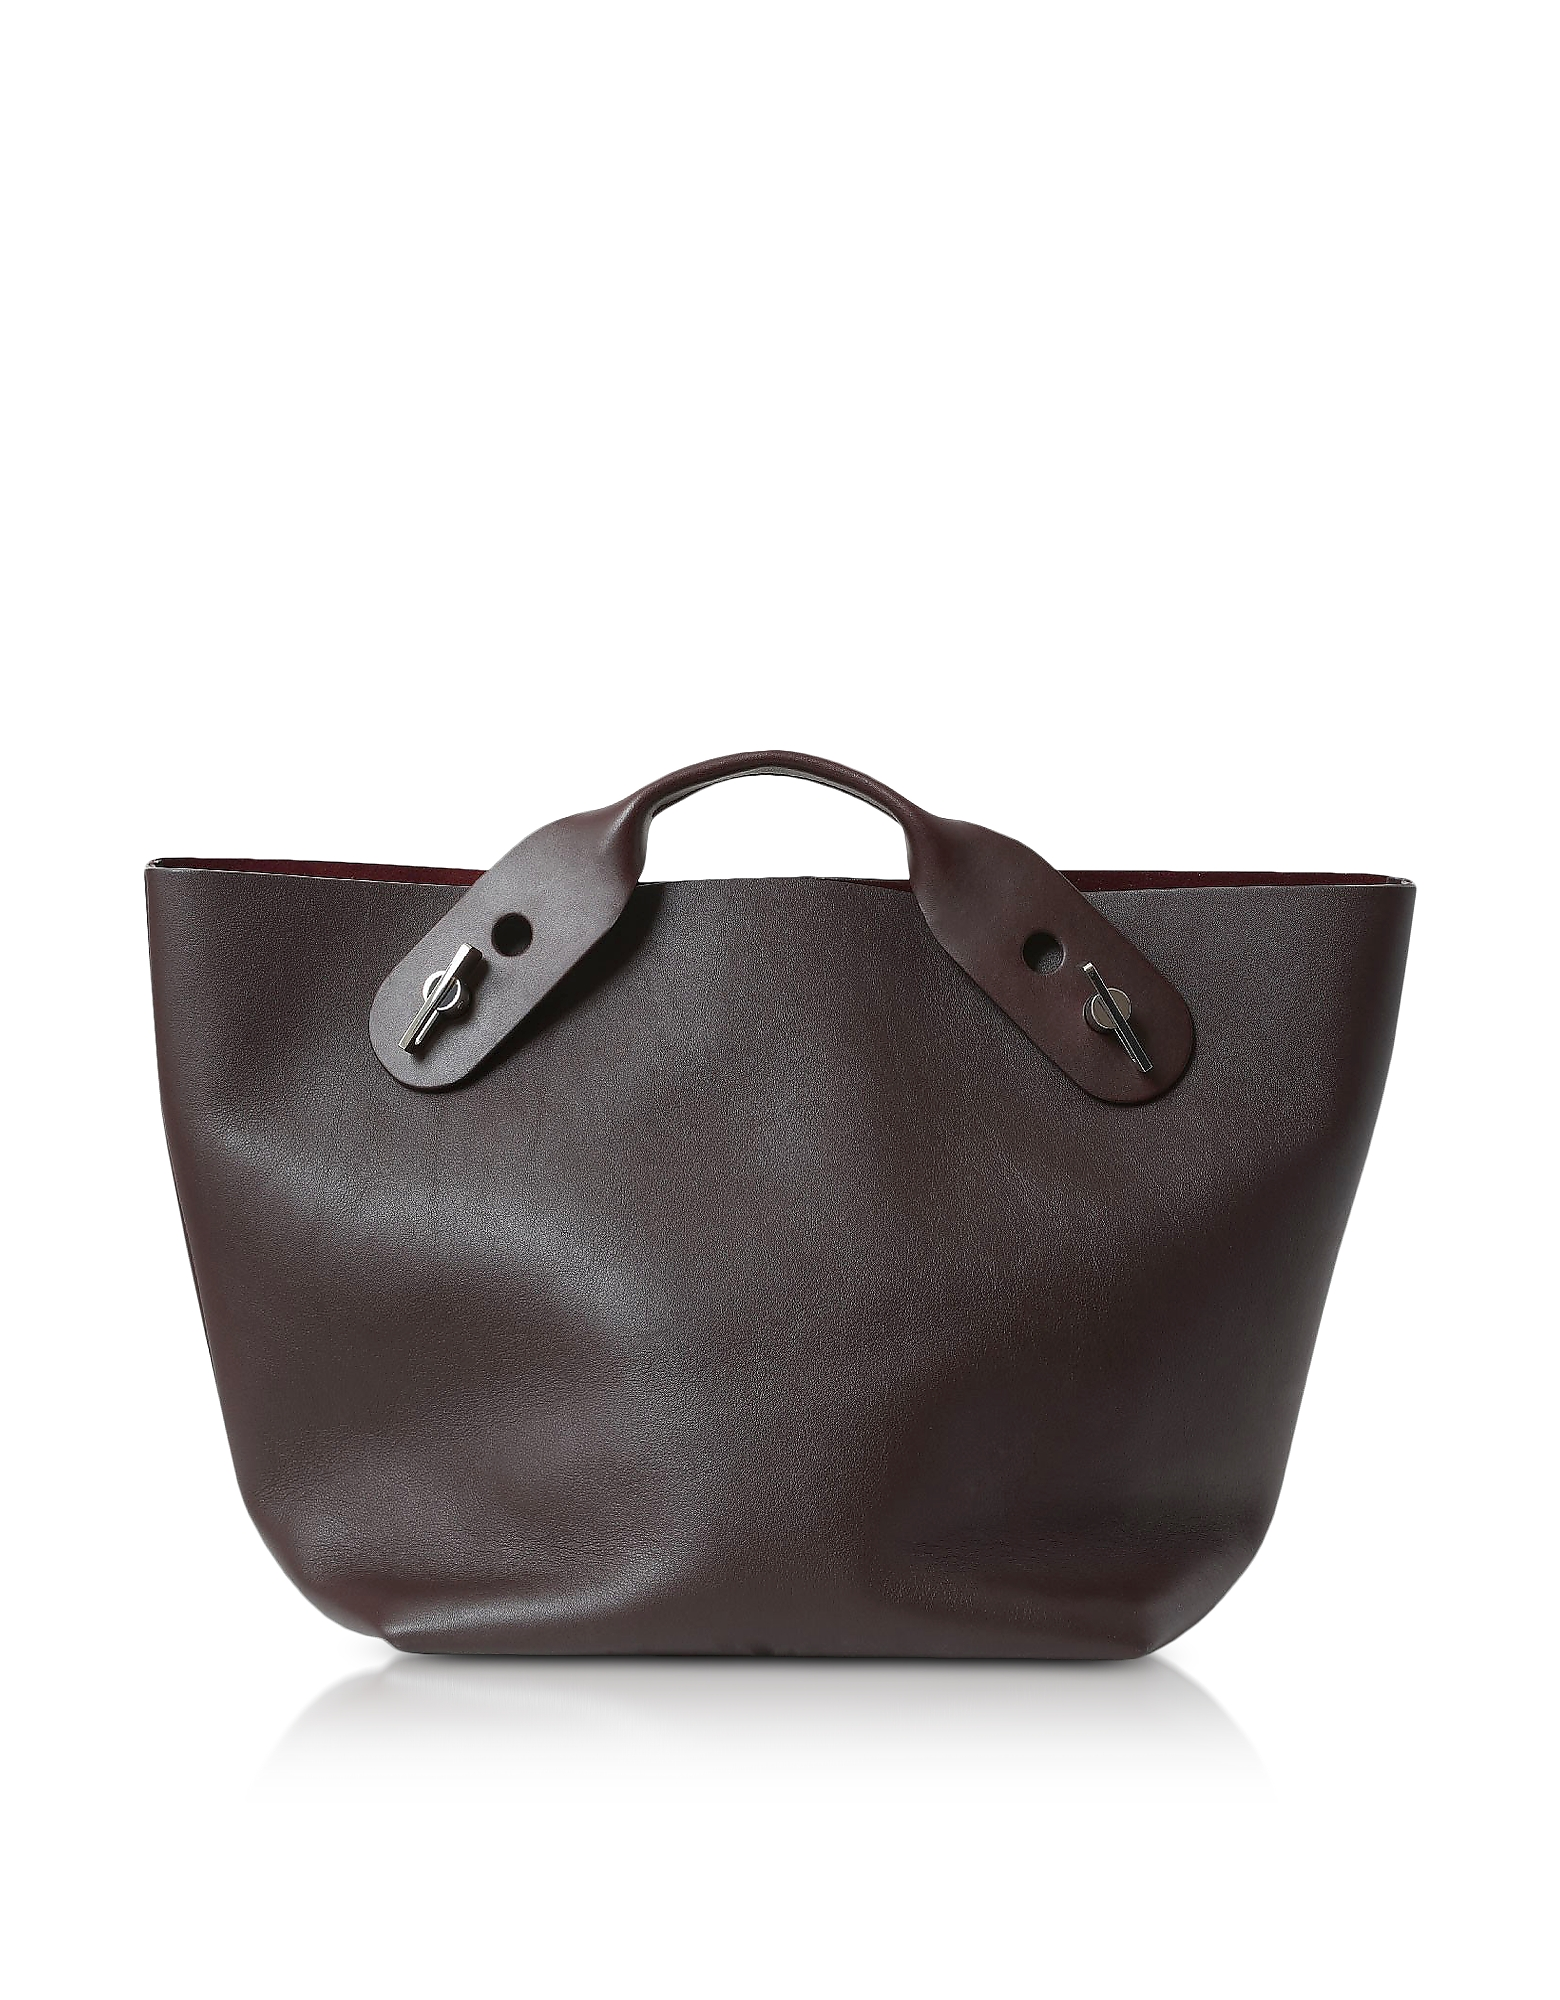 Sophie Hulme Handbags, Oxblood Soft Leather Bolt Tote